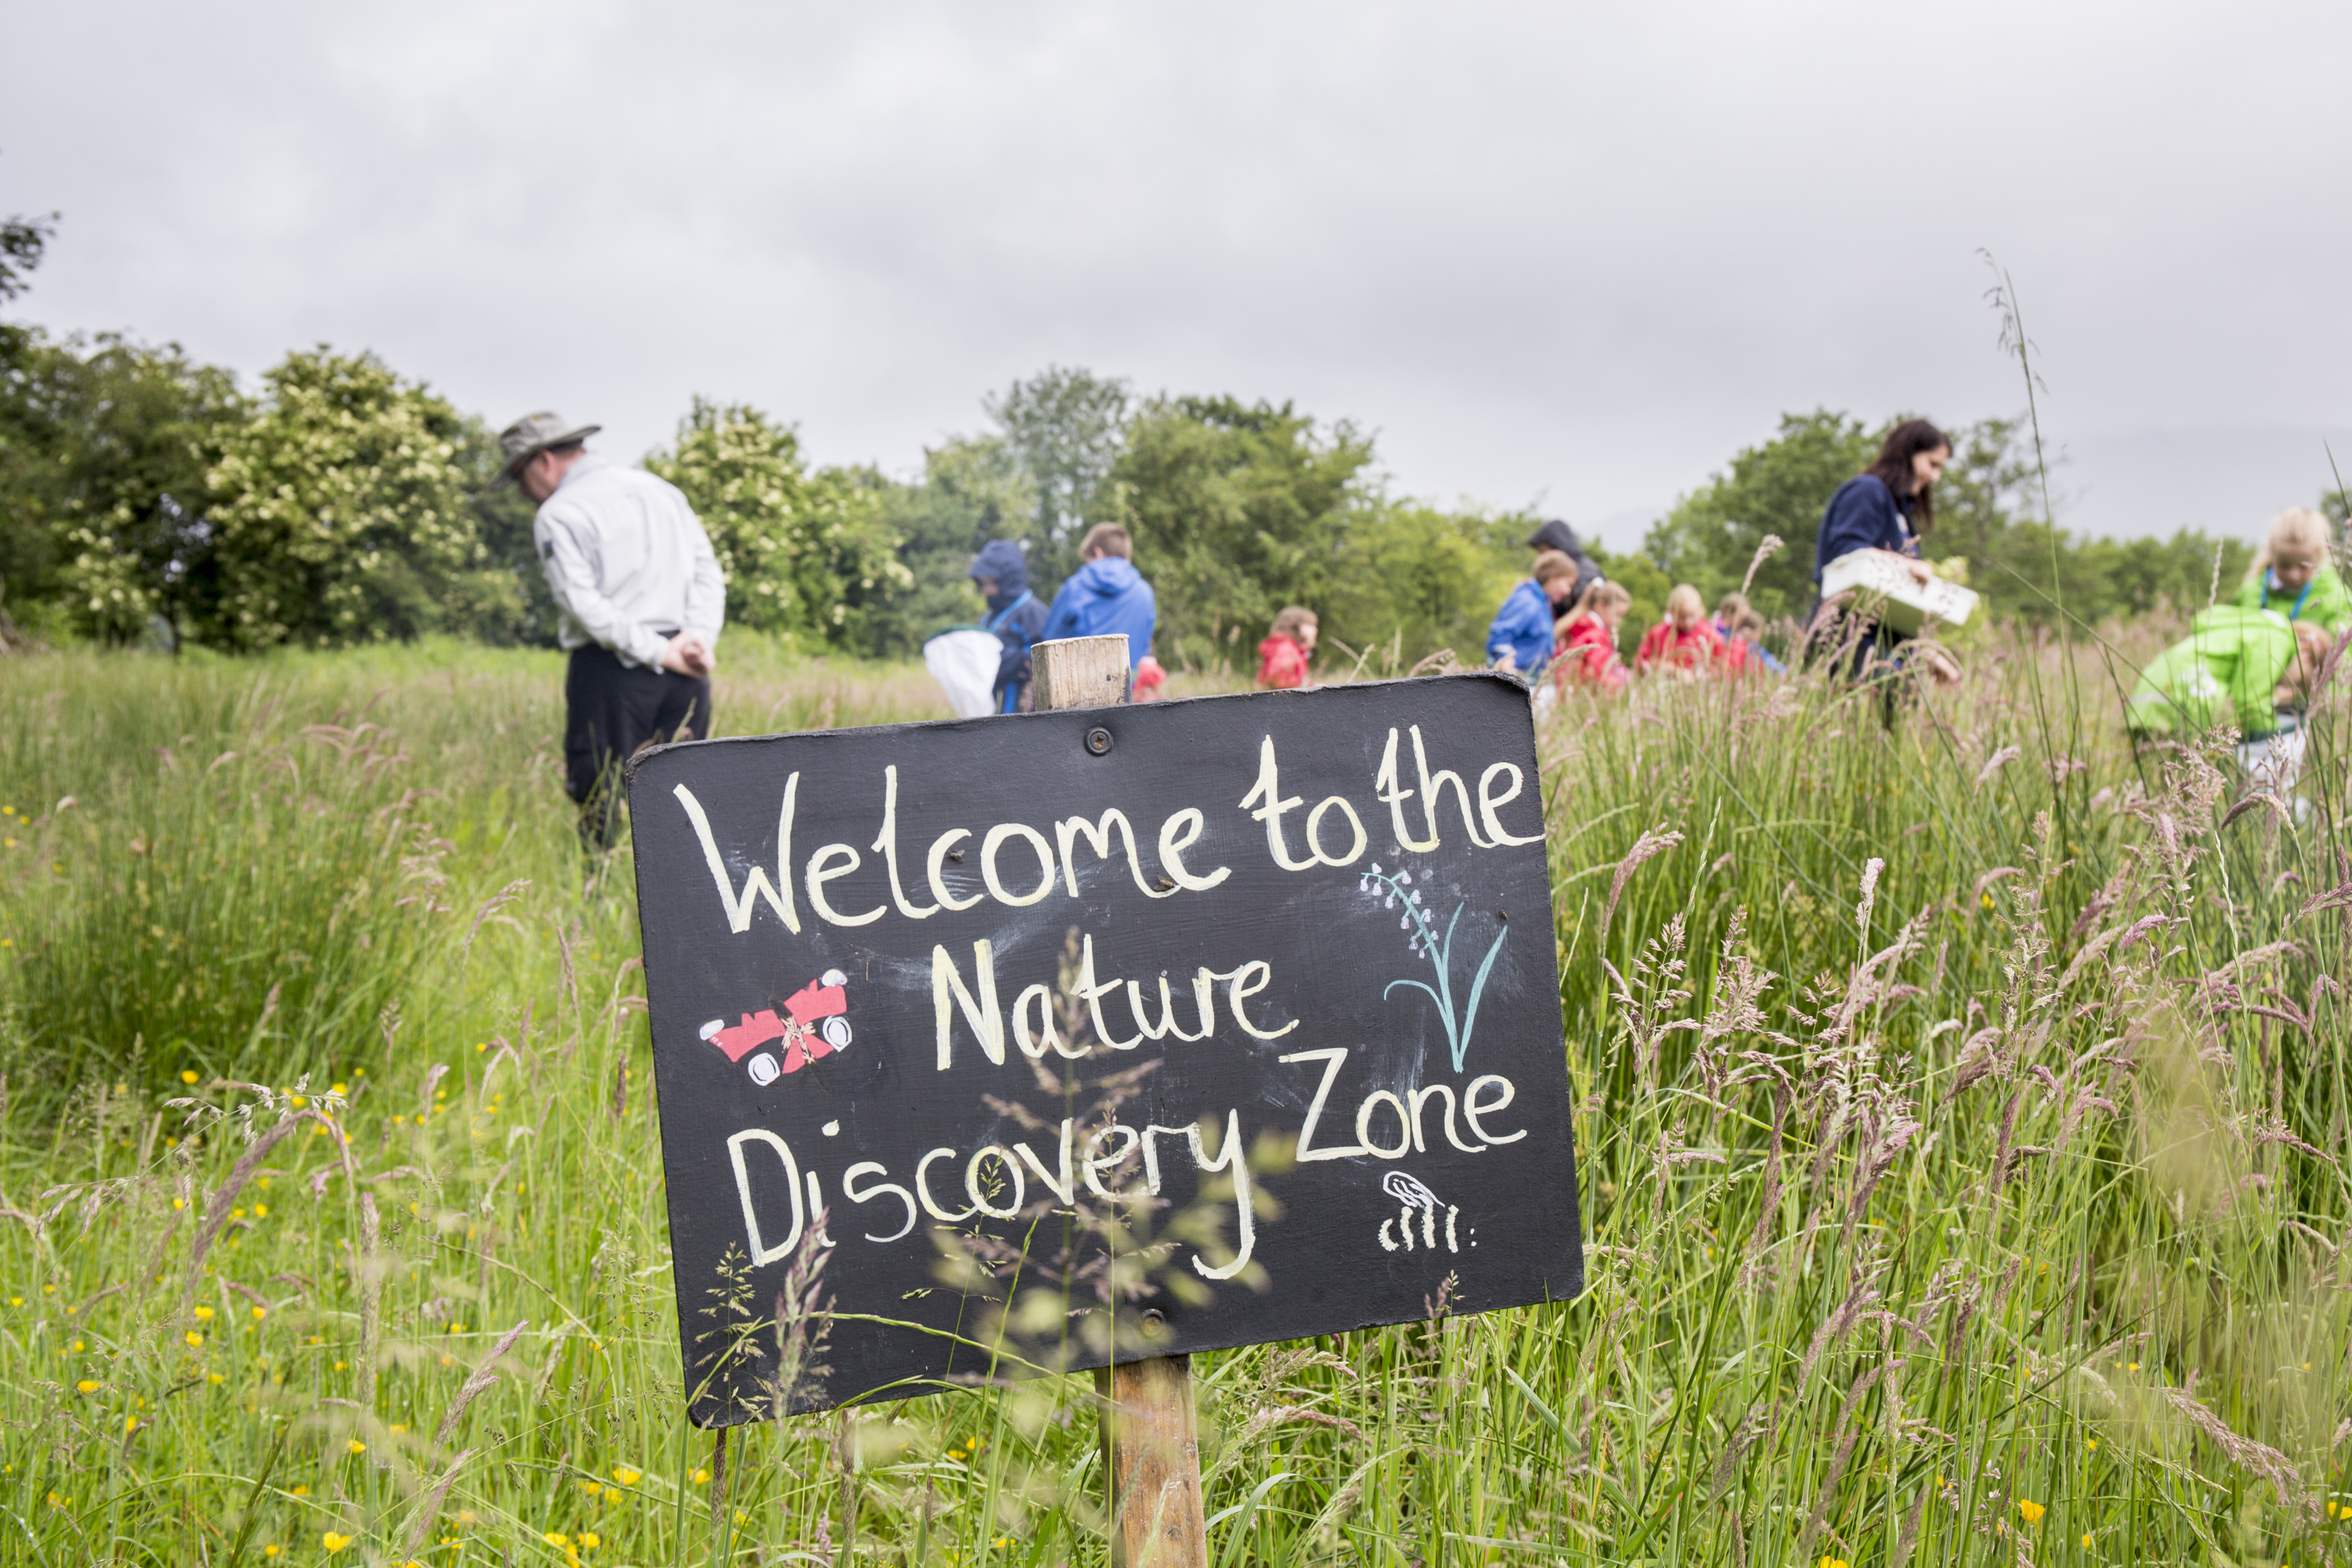 Children from Gartocharn Primary School at the Nature Discovery Zone at the RSPB Loch Lomond (David Palmar)